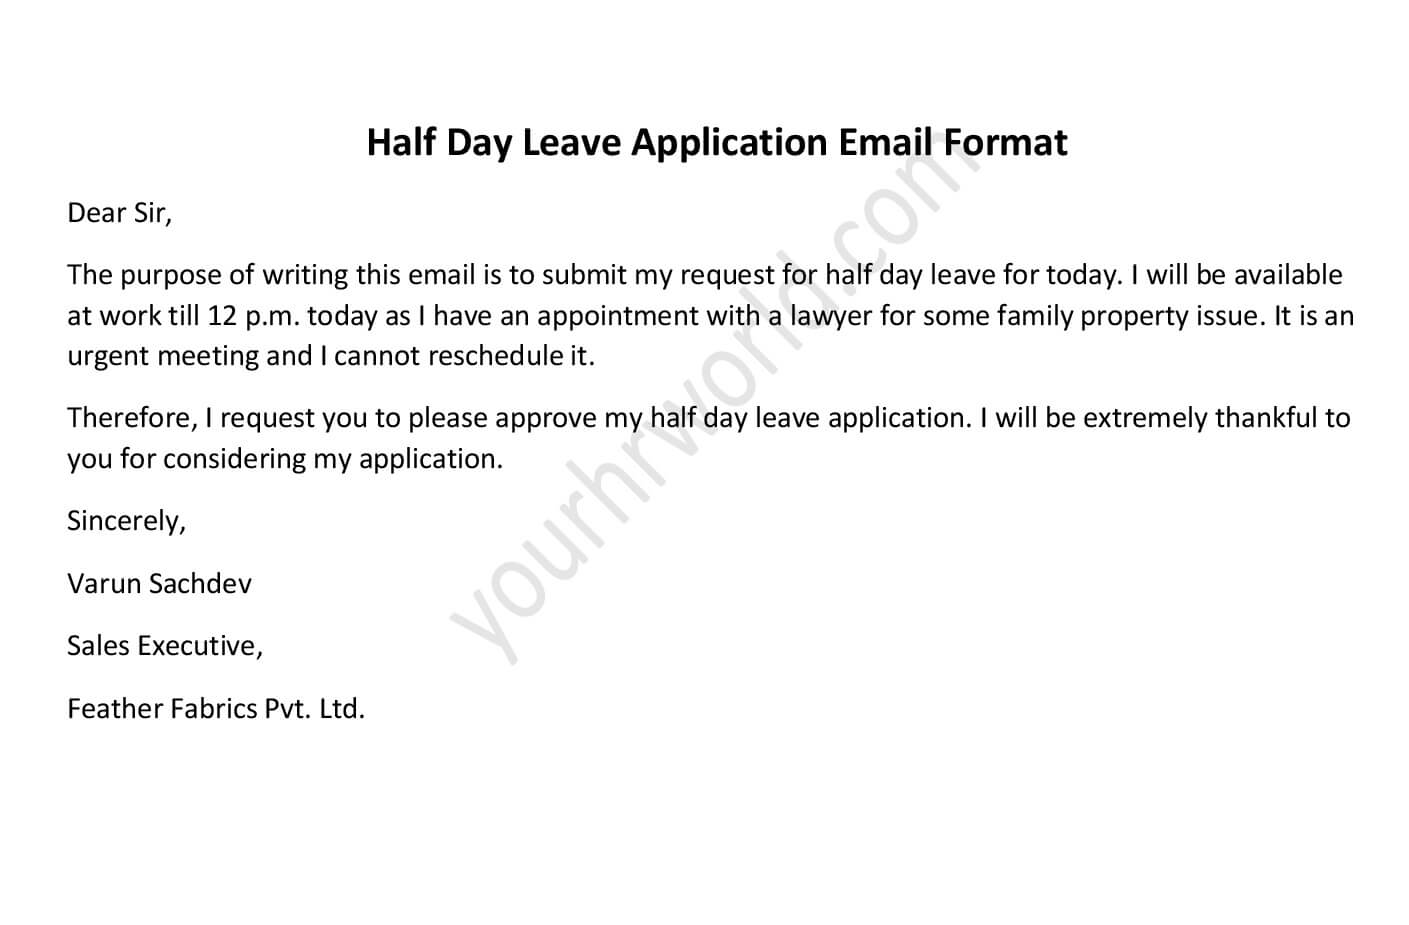 Easy Format of Half Day Leave Application Email